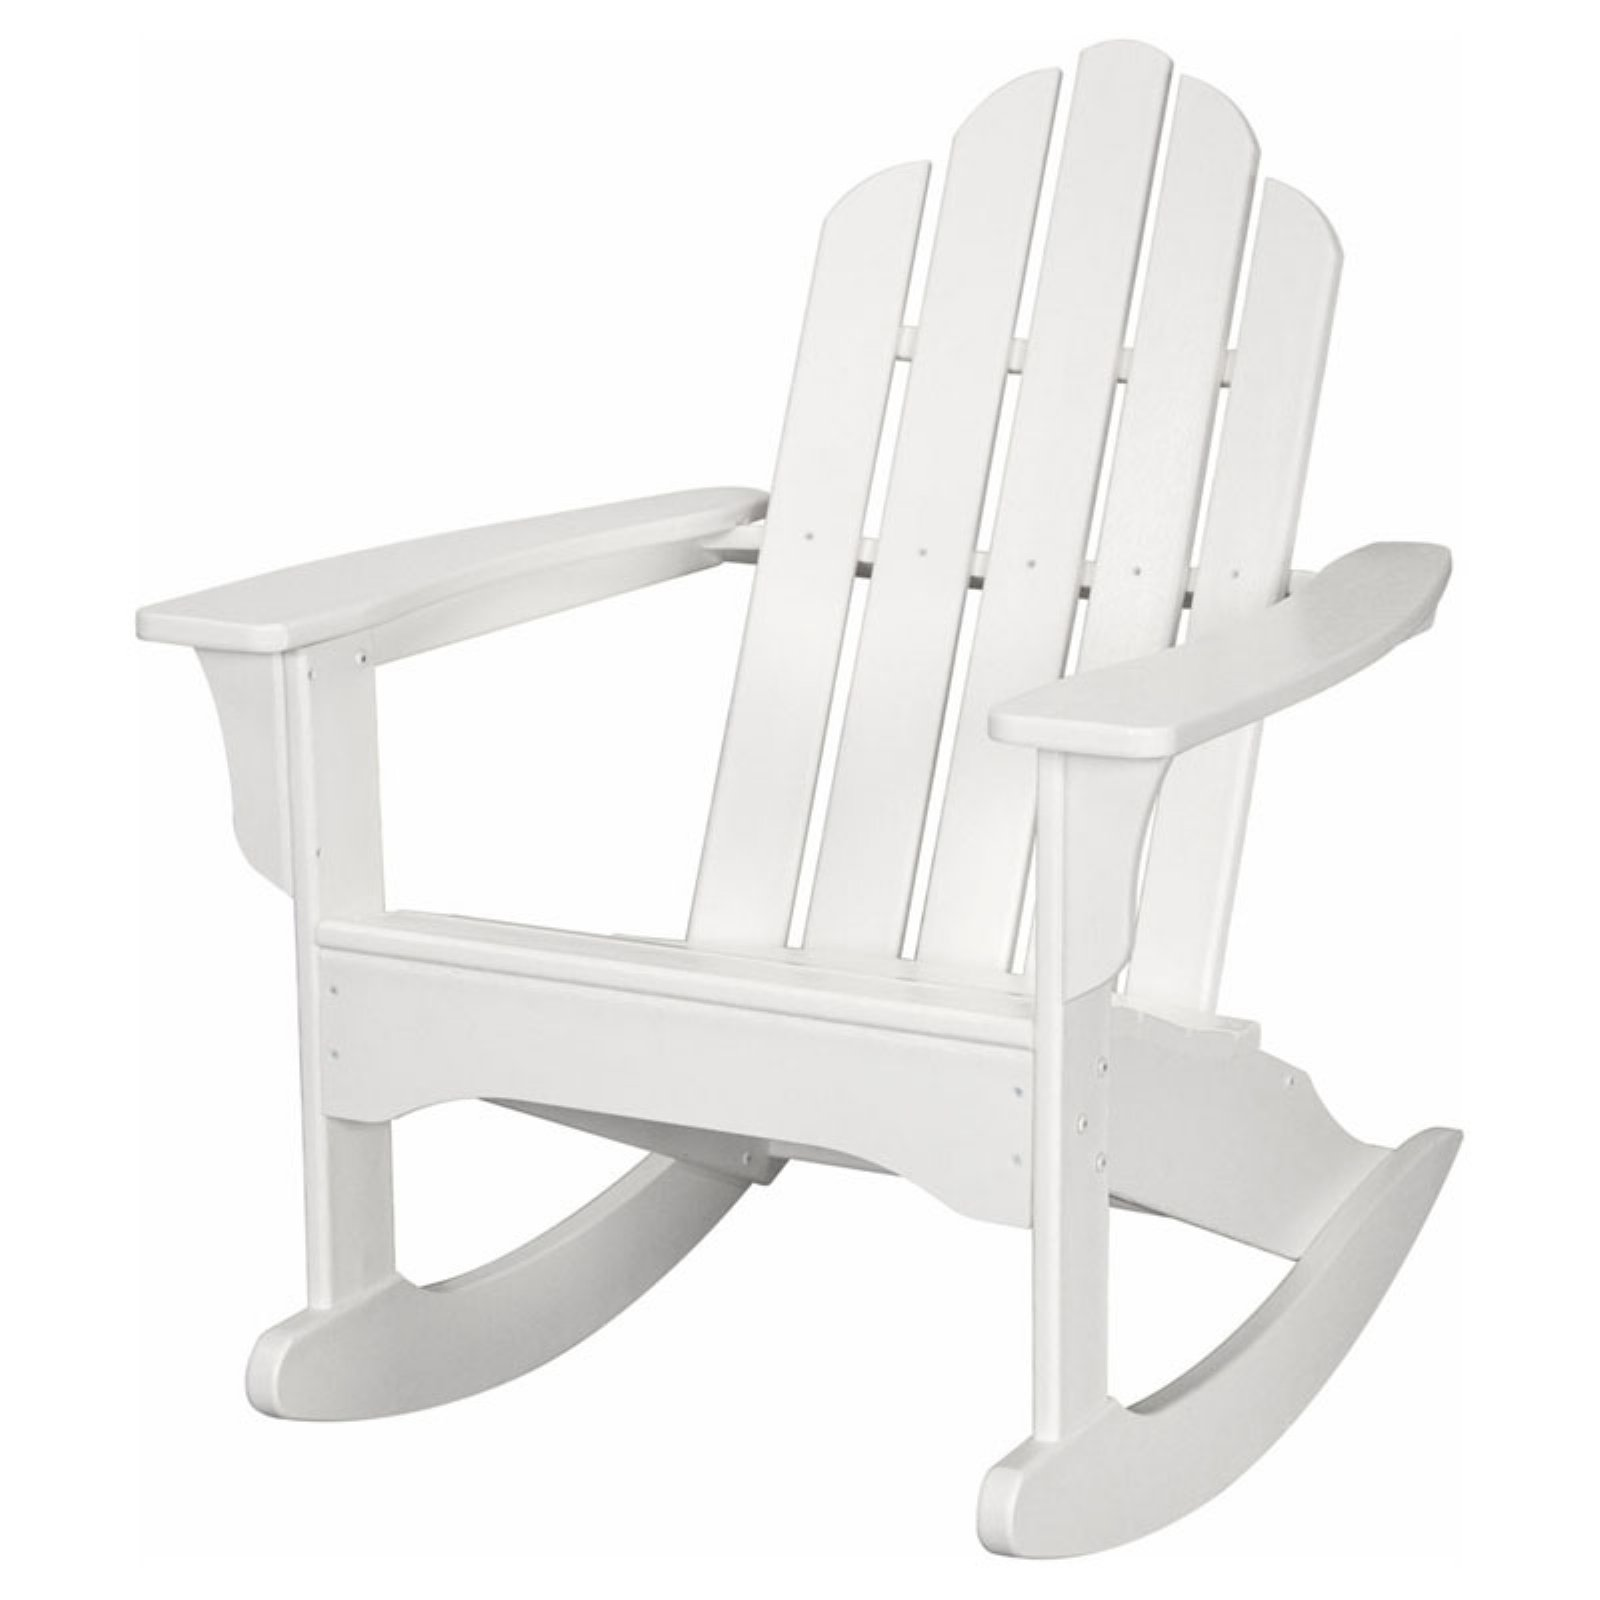 Hanover Outdoor Furniture All-Weather Contoured Adirondack Rocking Chair, White